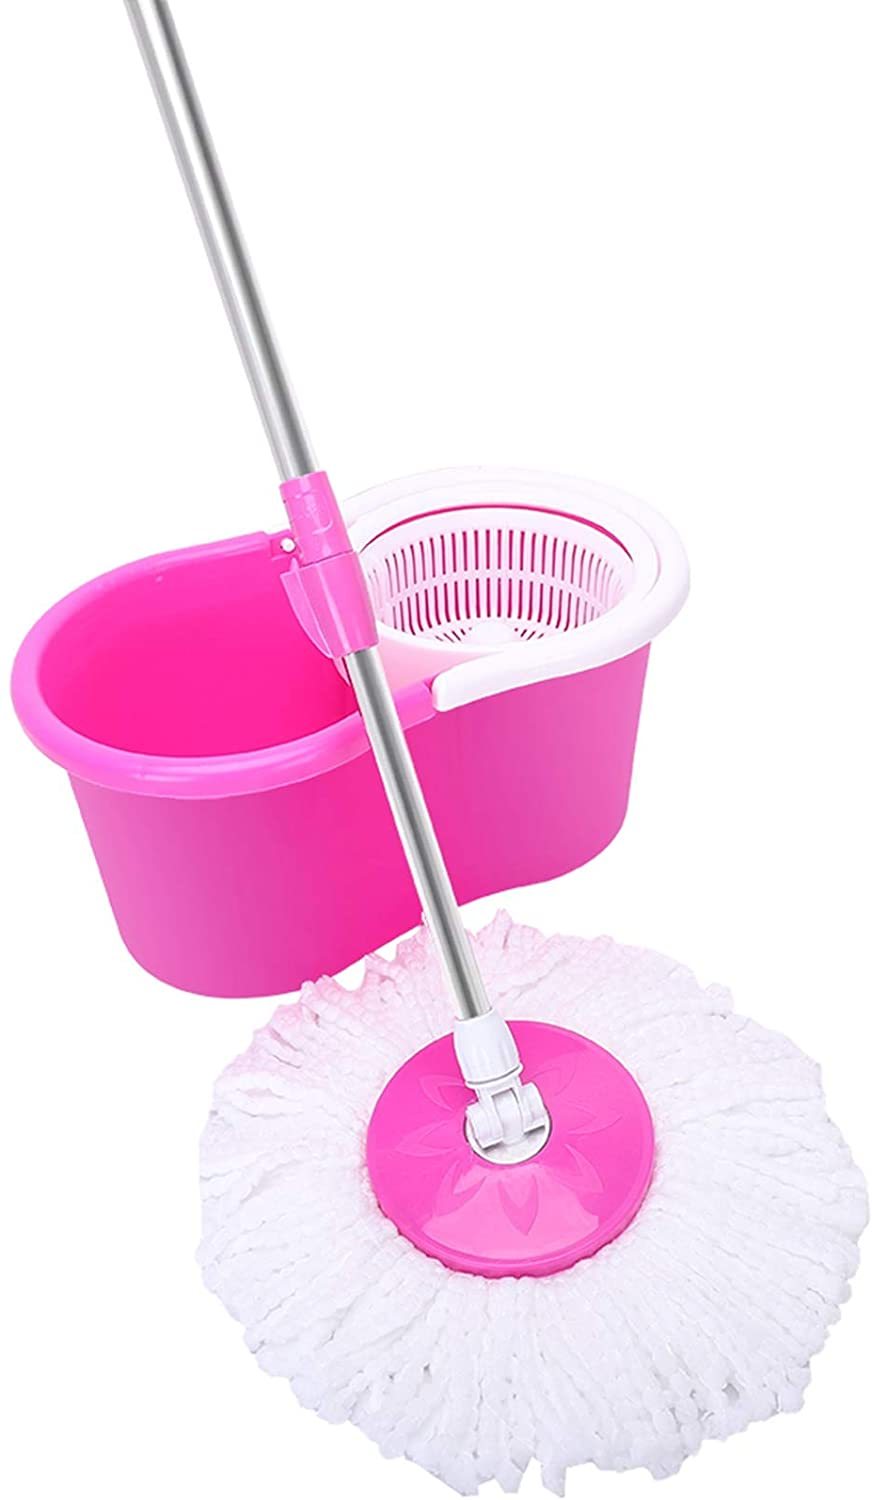 360° Spin Mop with Bucket & Dual Mop Heads Pink - Easywring Spin Mop & Bucket Floor Cleaning System